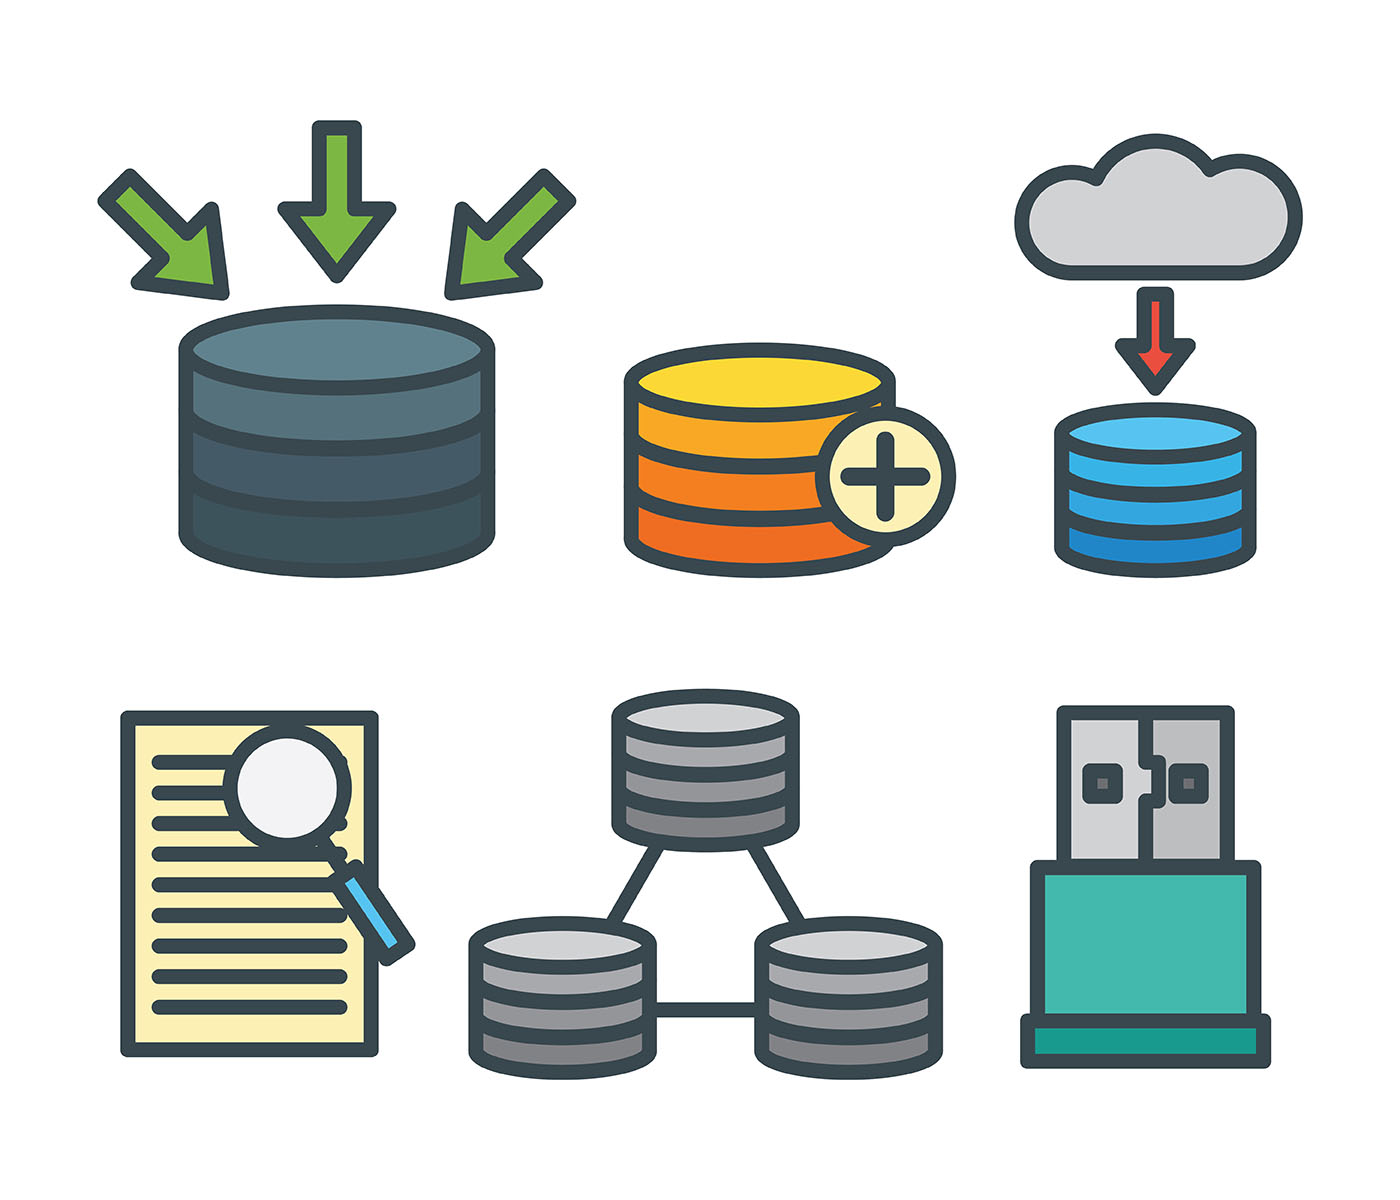 Databases and SQL Cheat Sheet for Interviews The first two screens provide a brief introduction into databases and SQL. To jump right into interview questions, start with the third screen (https://algo...